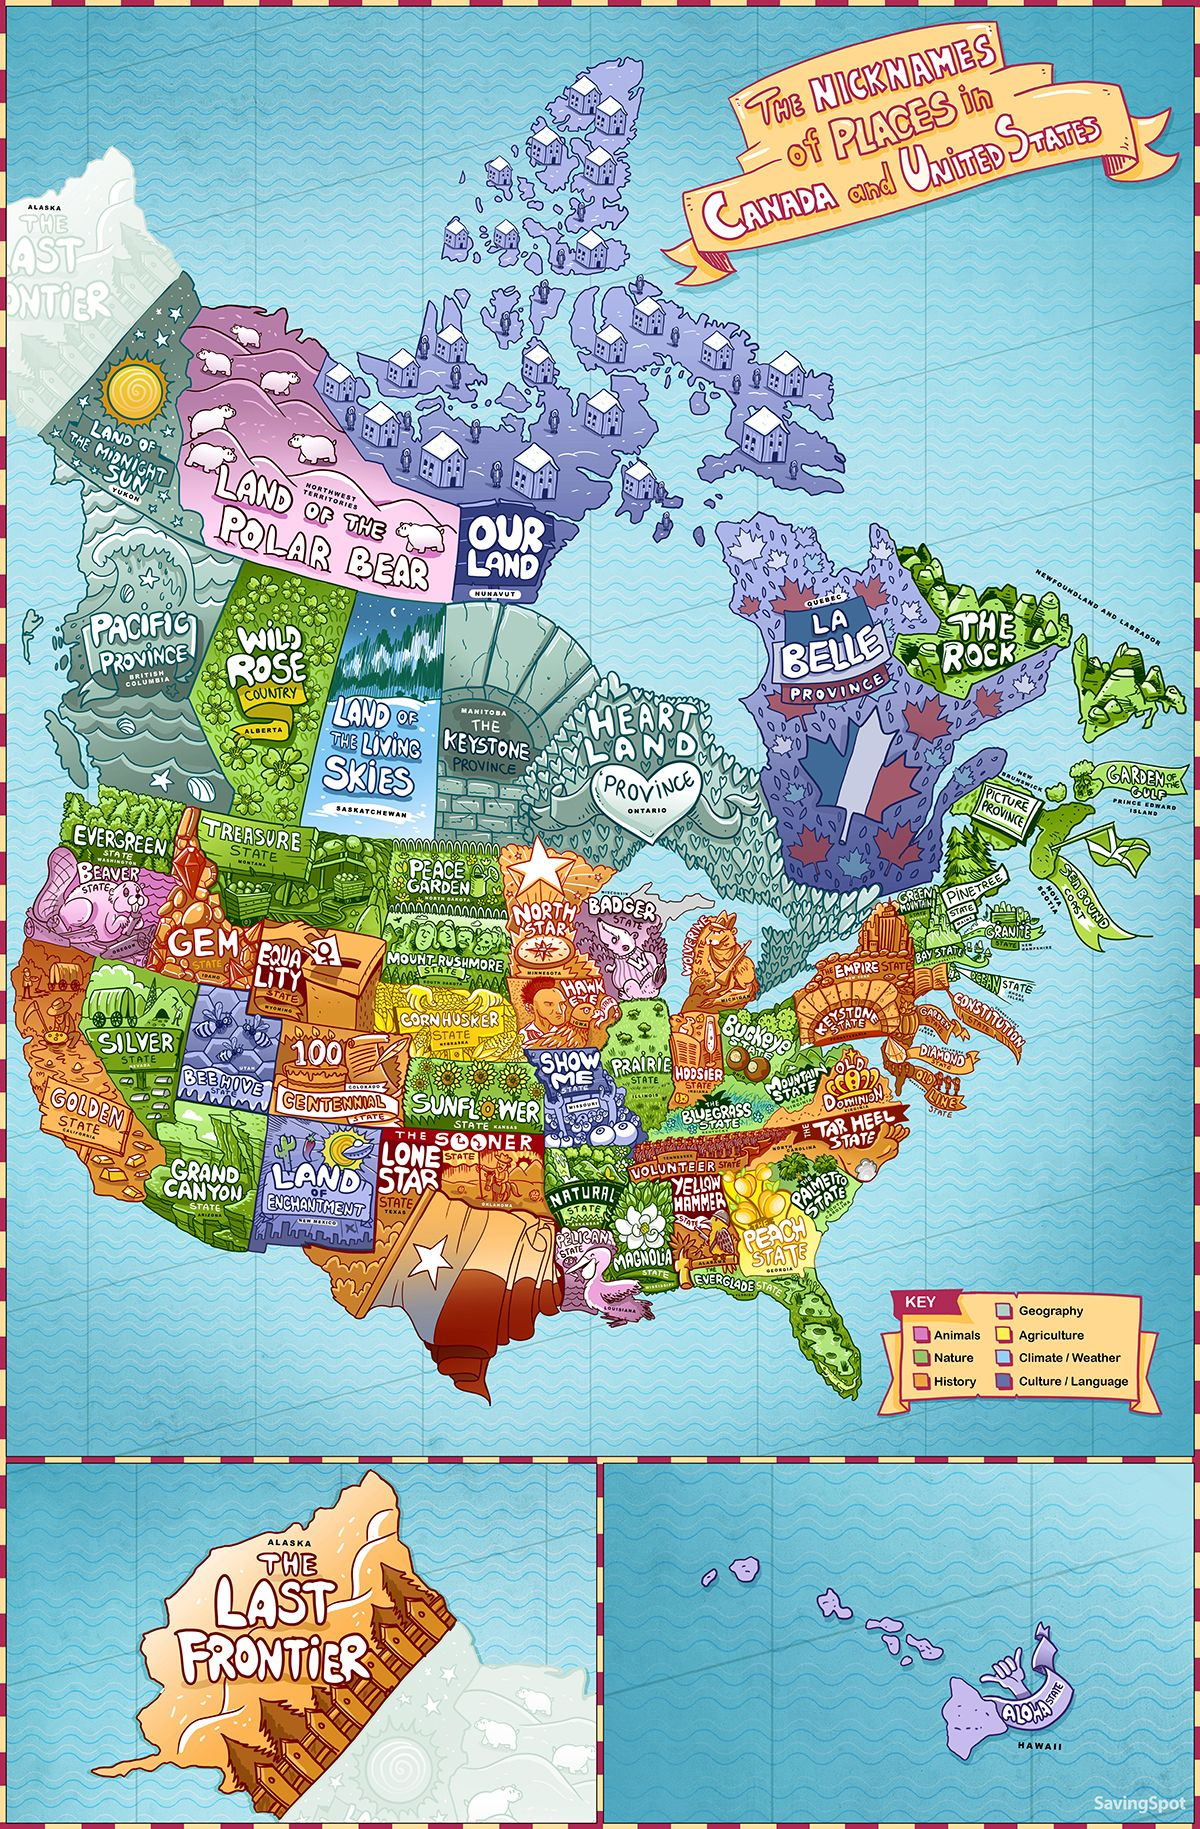 Maps Reveal Nicknames of Every U.S. State and Canadian